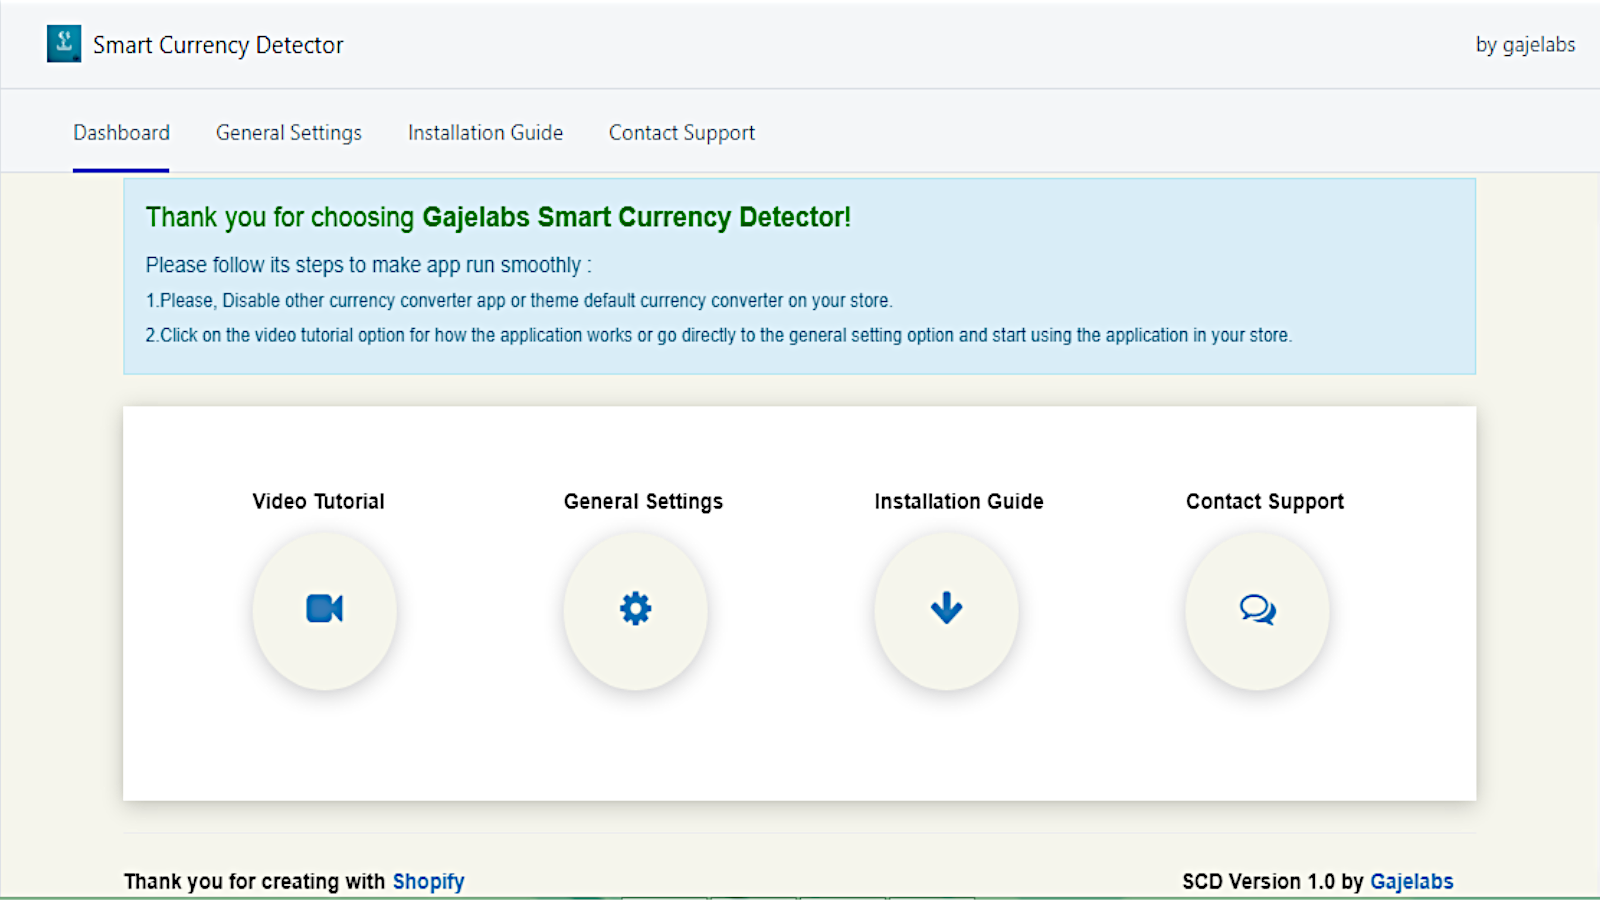 Presention of smart currency detector dashboard.